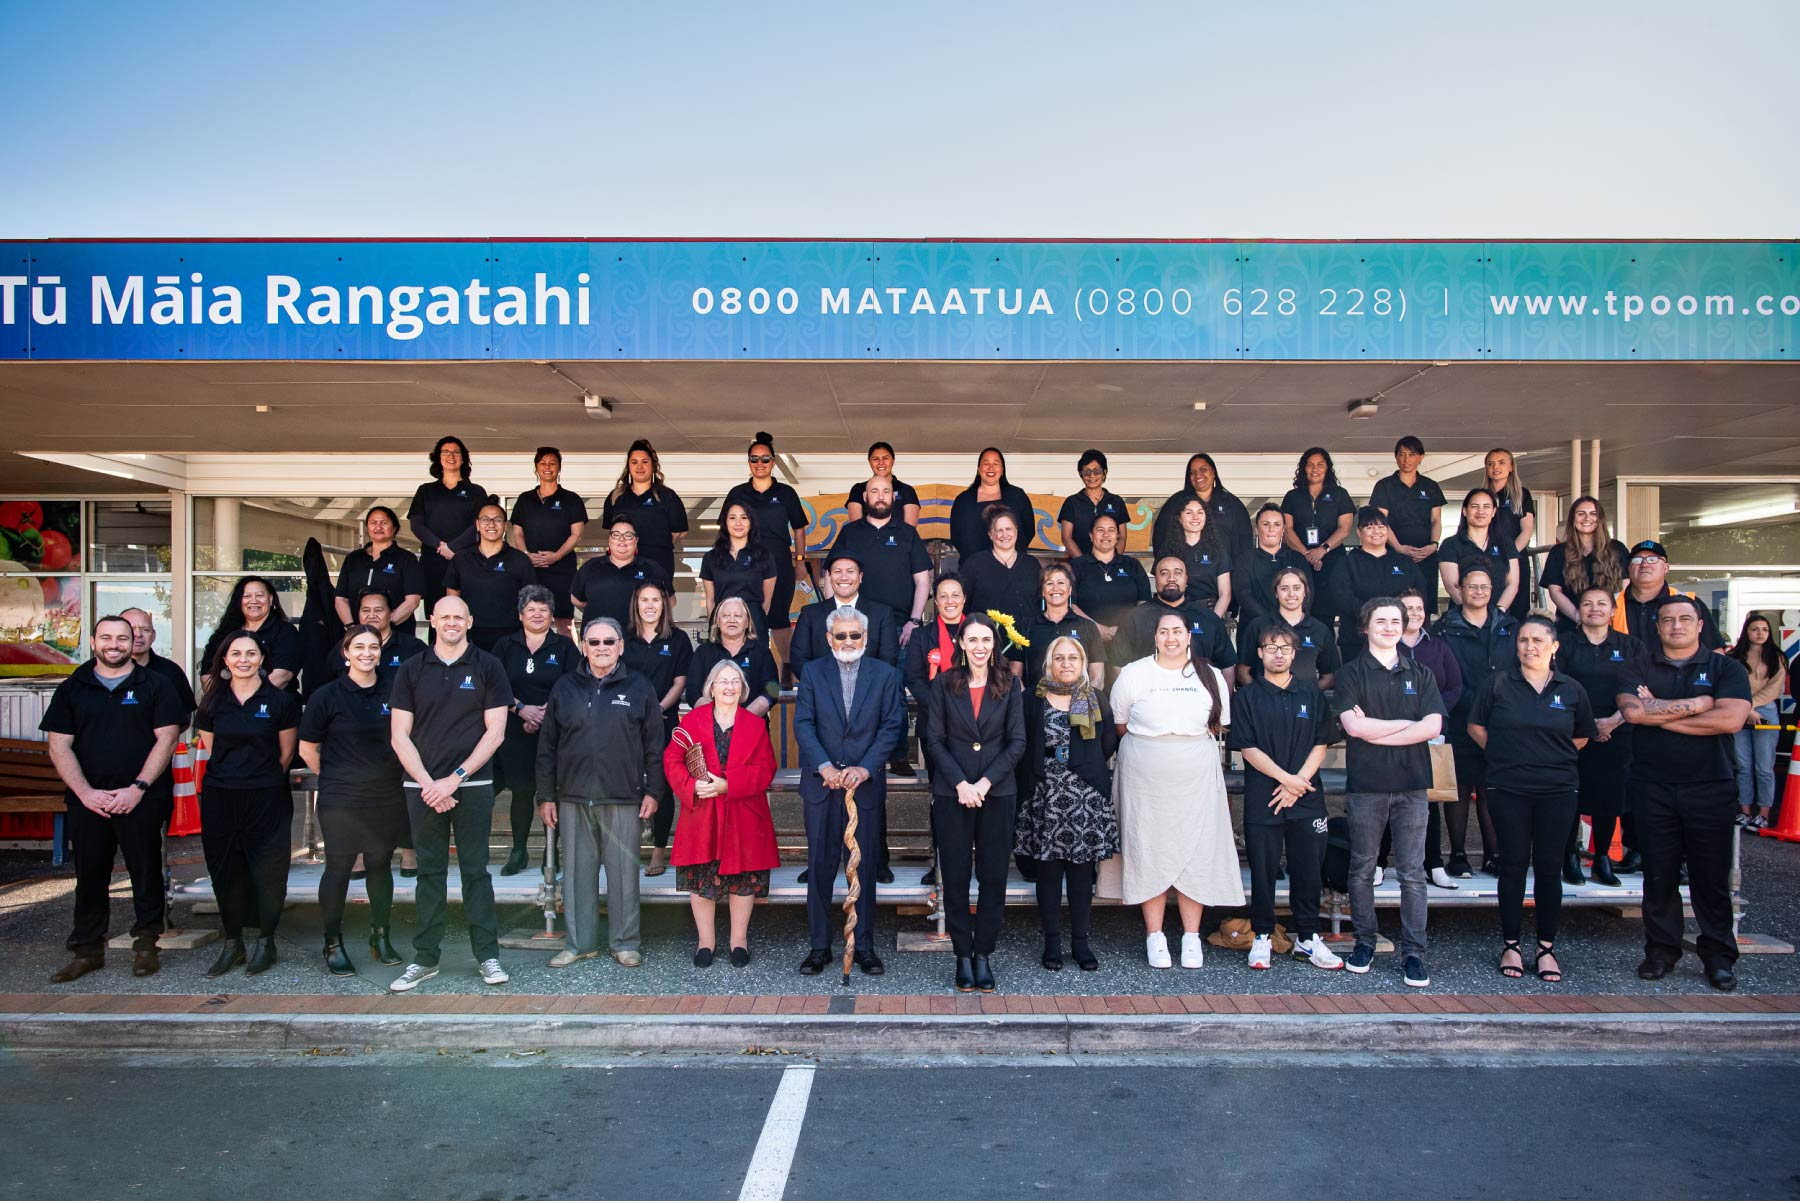 The TPOOMStaff and Board pose for a picture with the Prime Minister during her visit in 2020